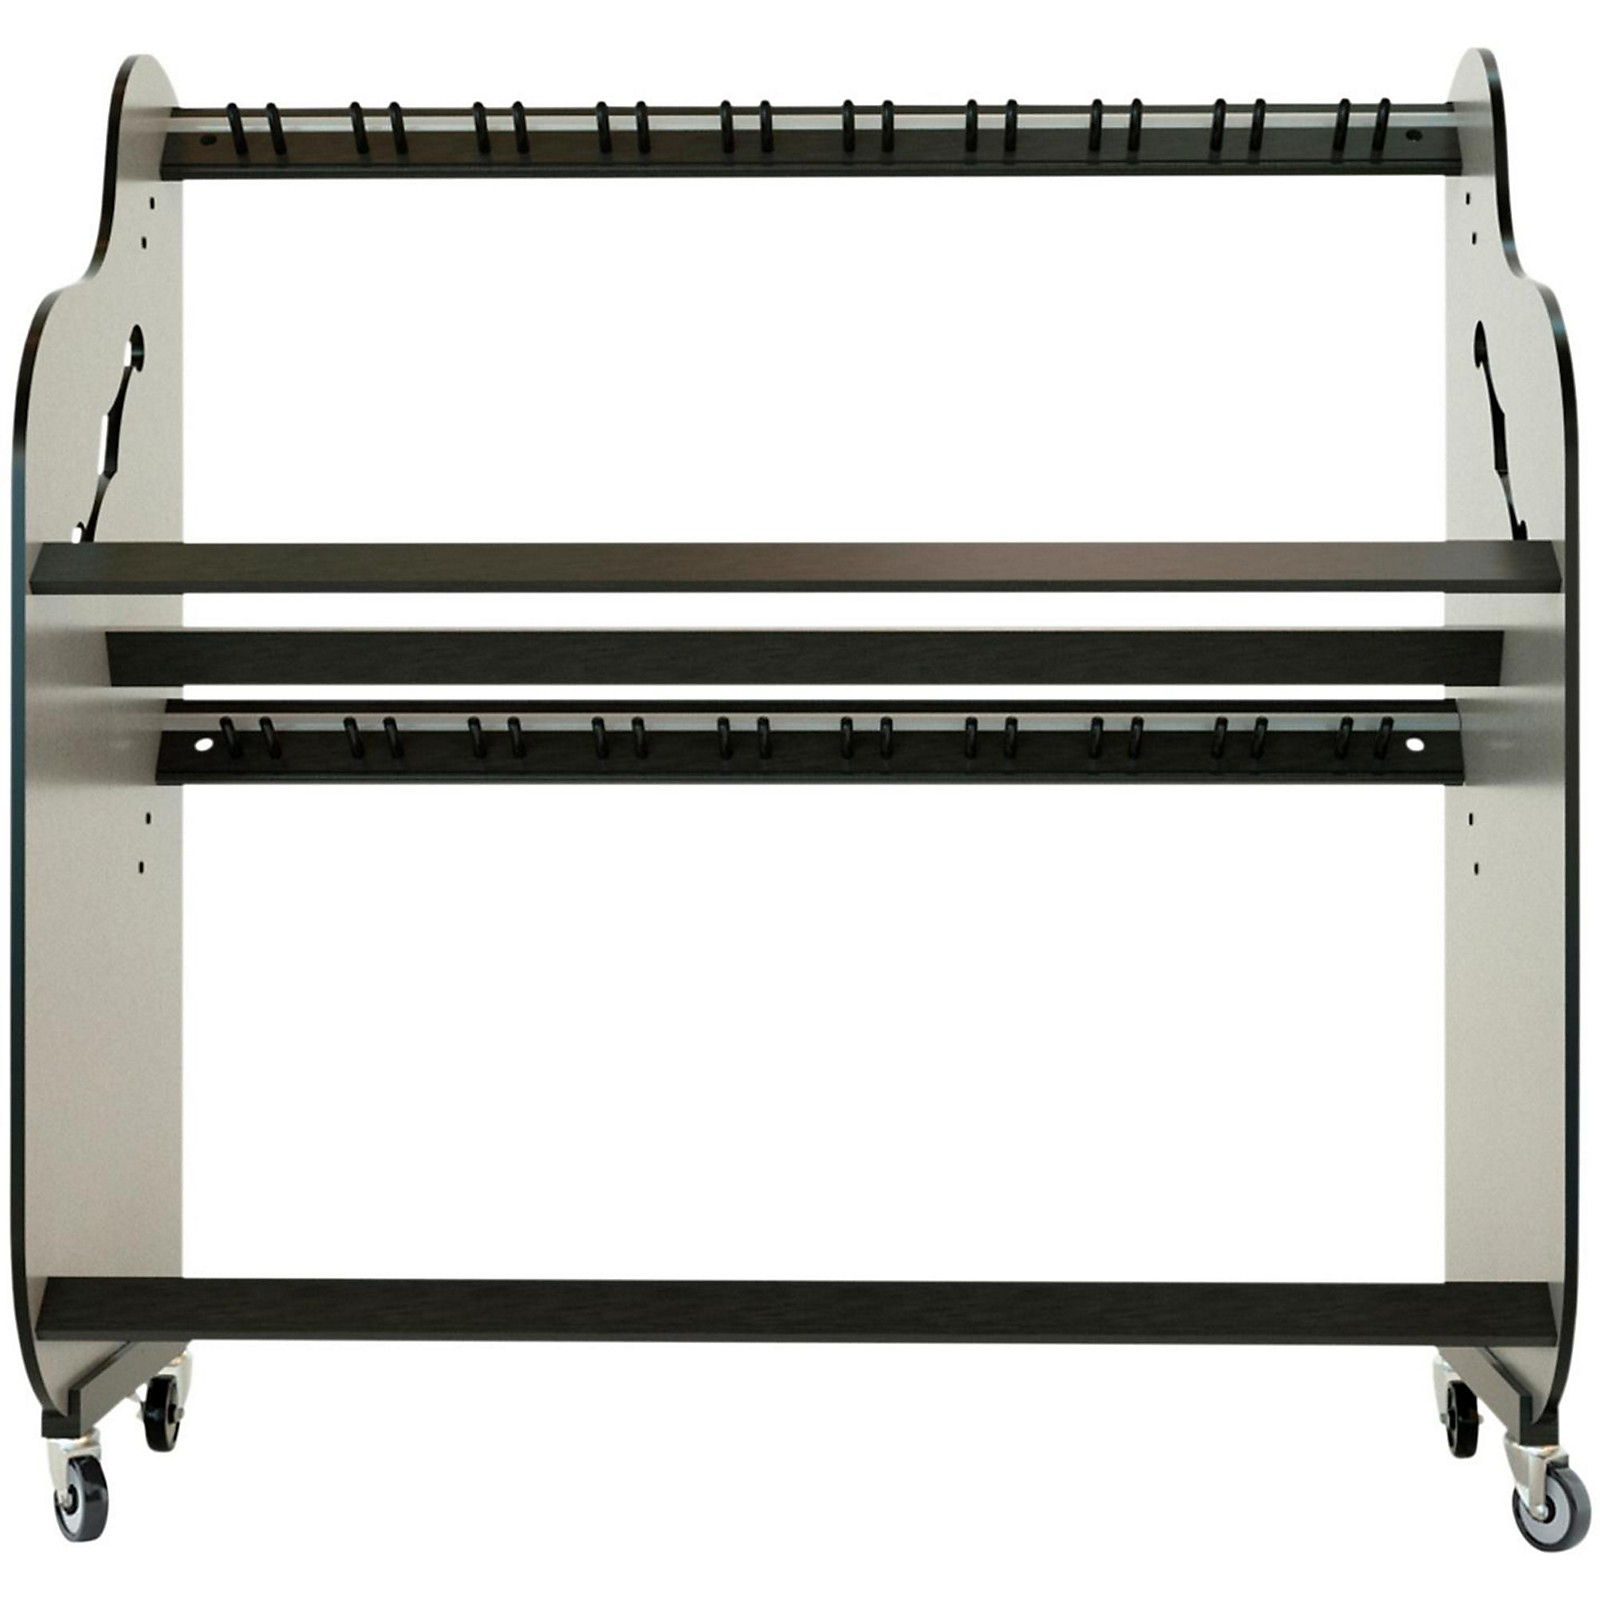 A&S Crafted Products Band Room Double-Stack Guitar Shelf Rack